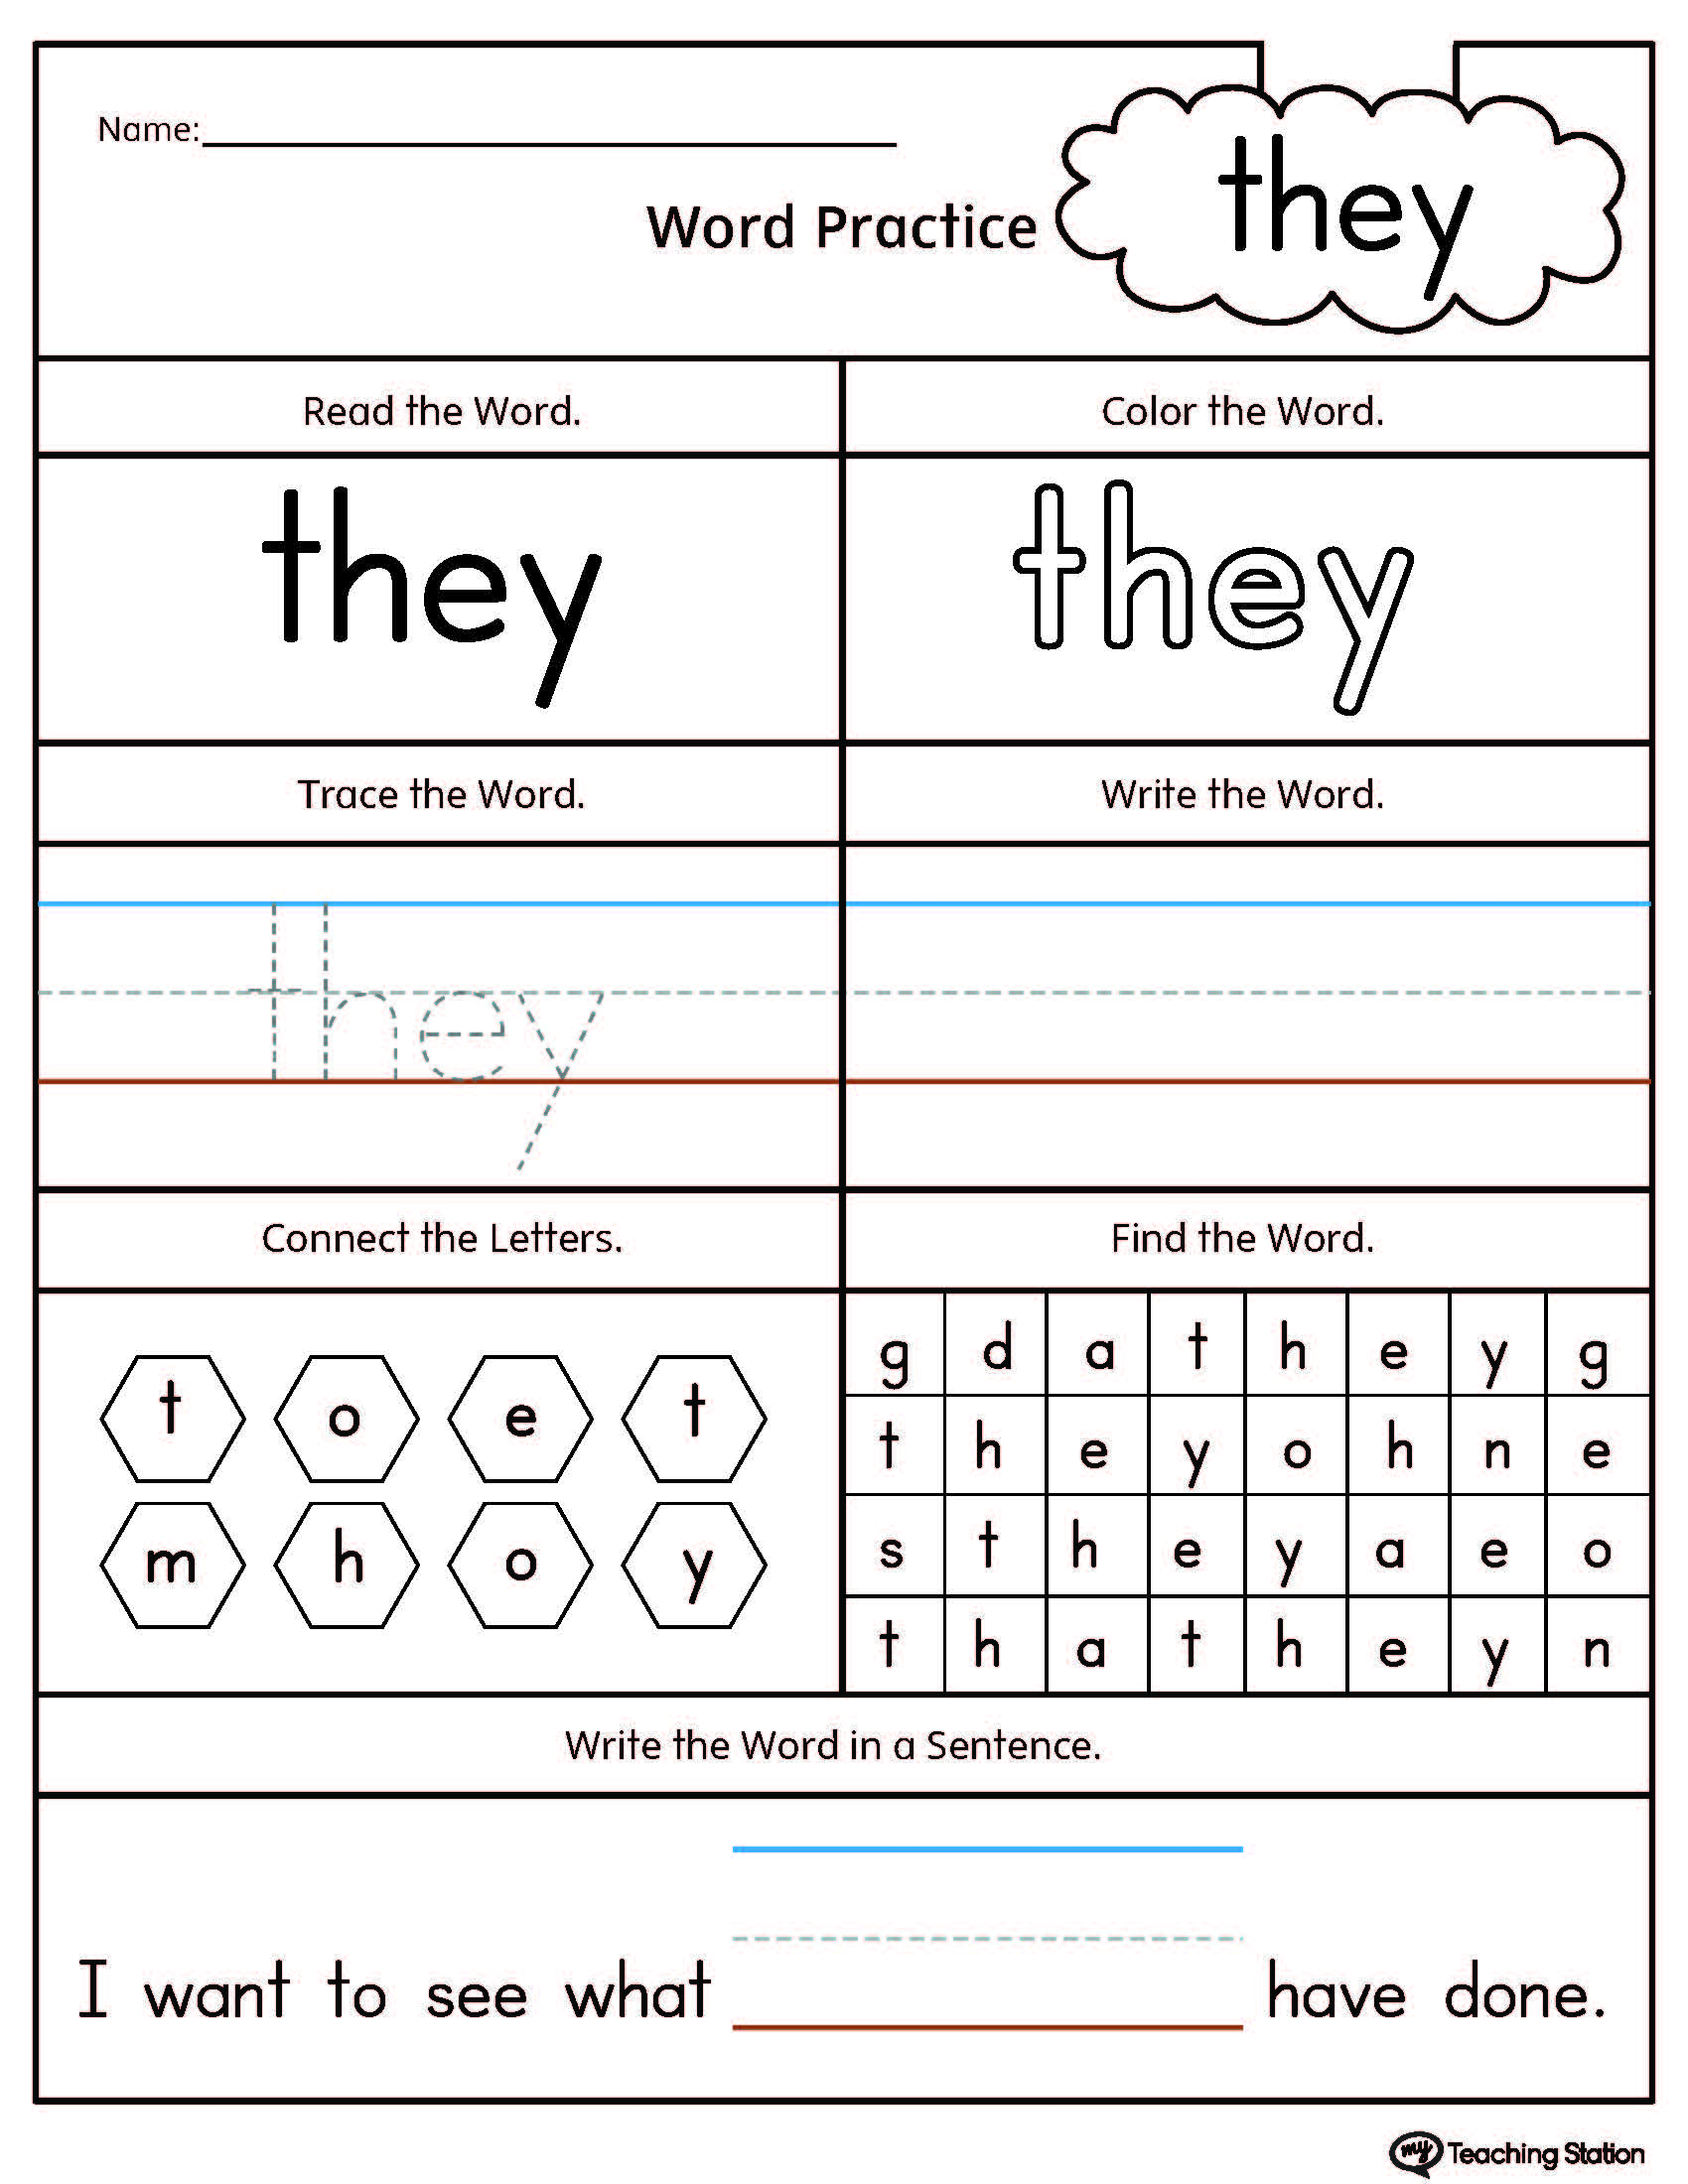 Worksheets Sight Word Worksheets high frequency word they printable worksheet myteachingstation com worksheet